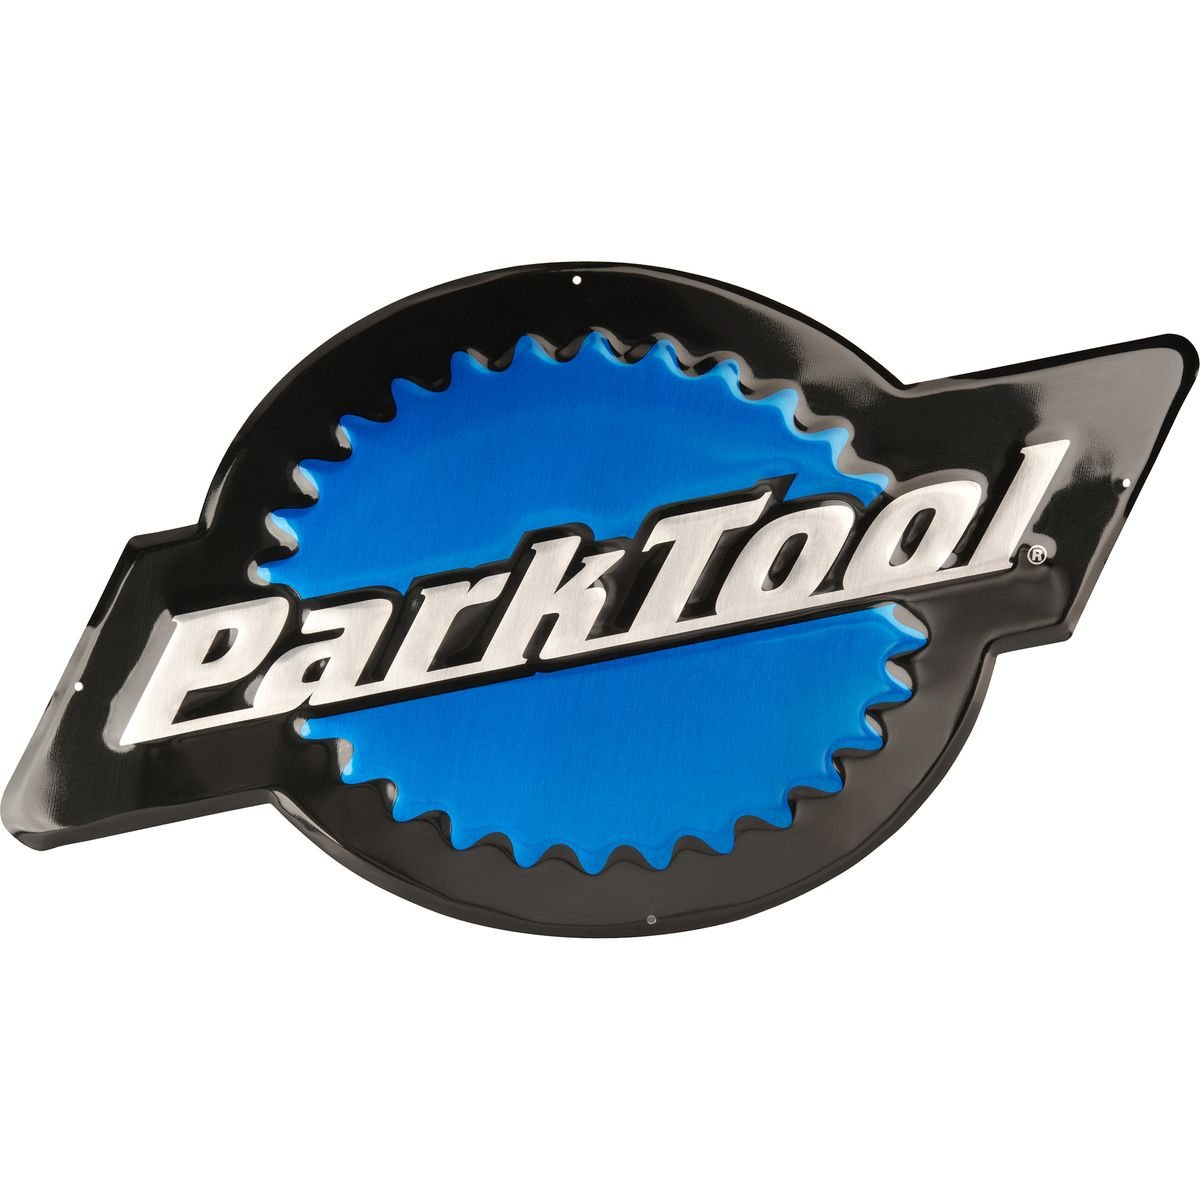 Park Tool MLS-1 Park Logo Sign by Park